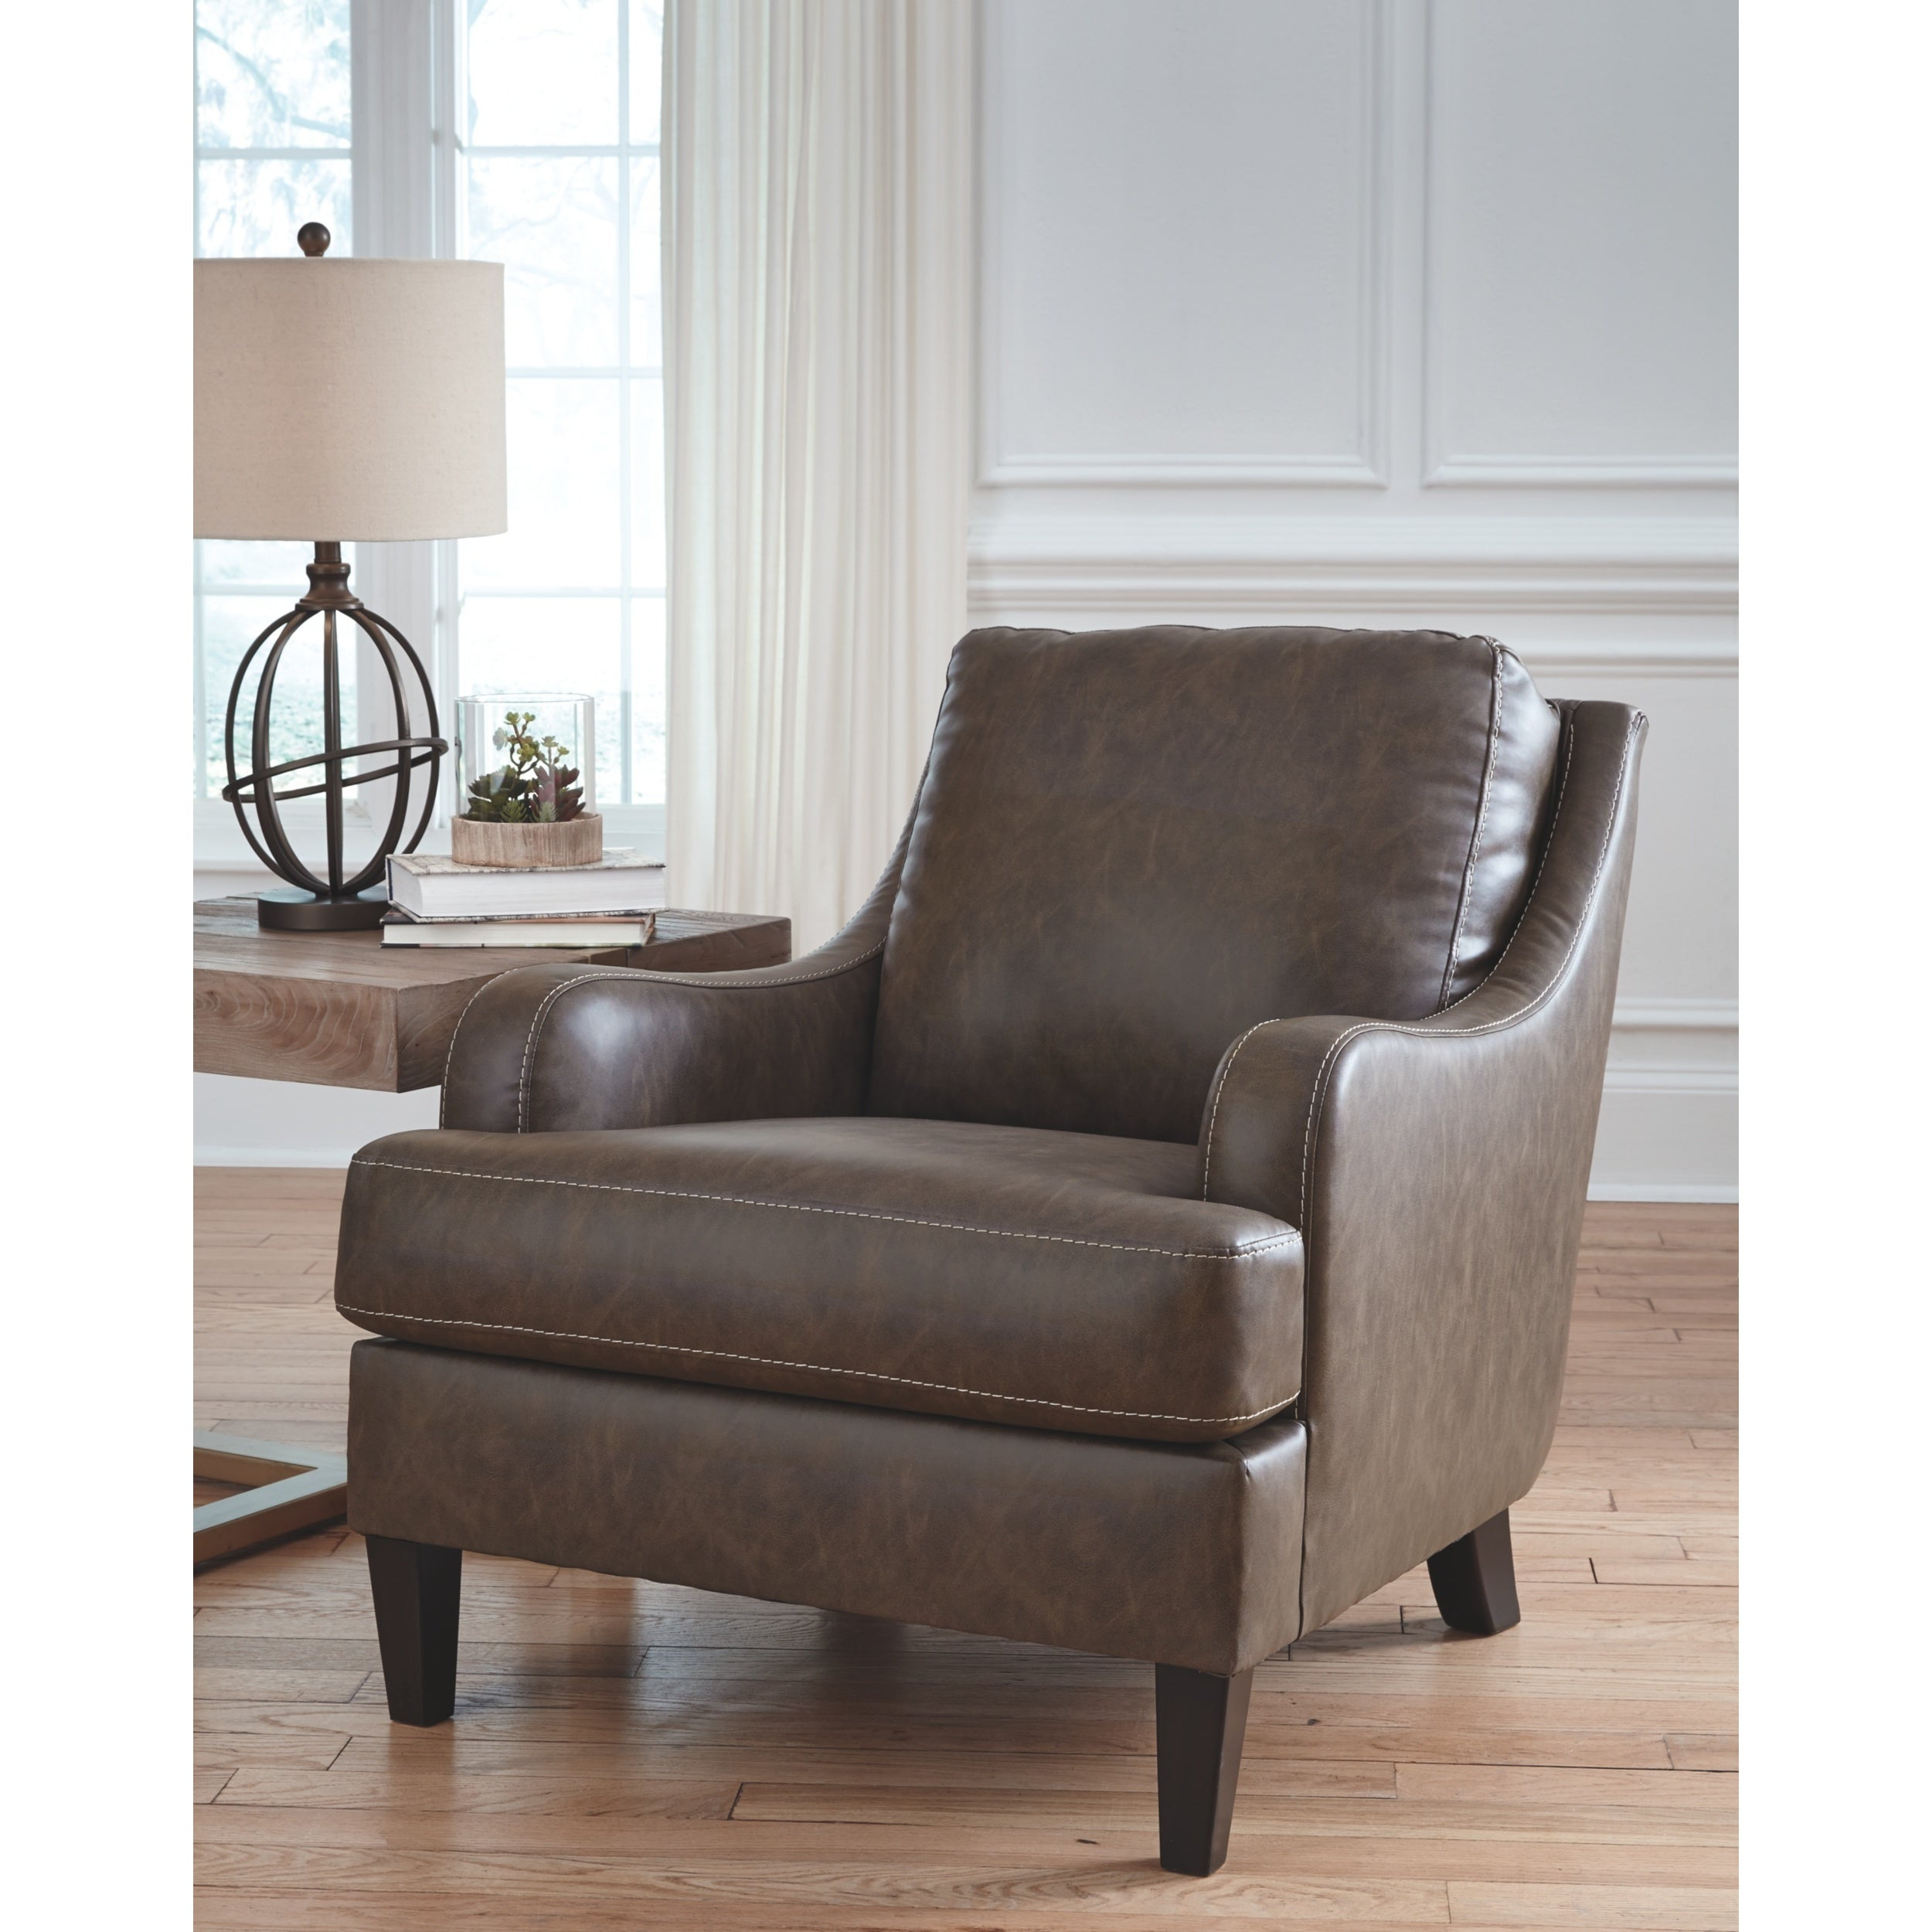 Pleasant Tirolo Casual Brown Faux Leather Accent Chair Ocoug Best Dining Table And Chair Ideas Images Ocougorg